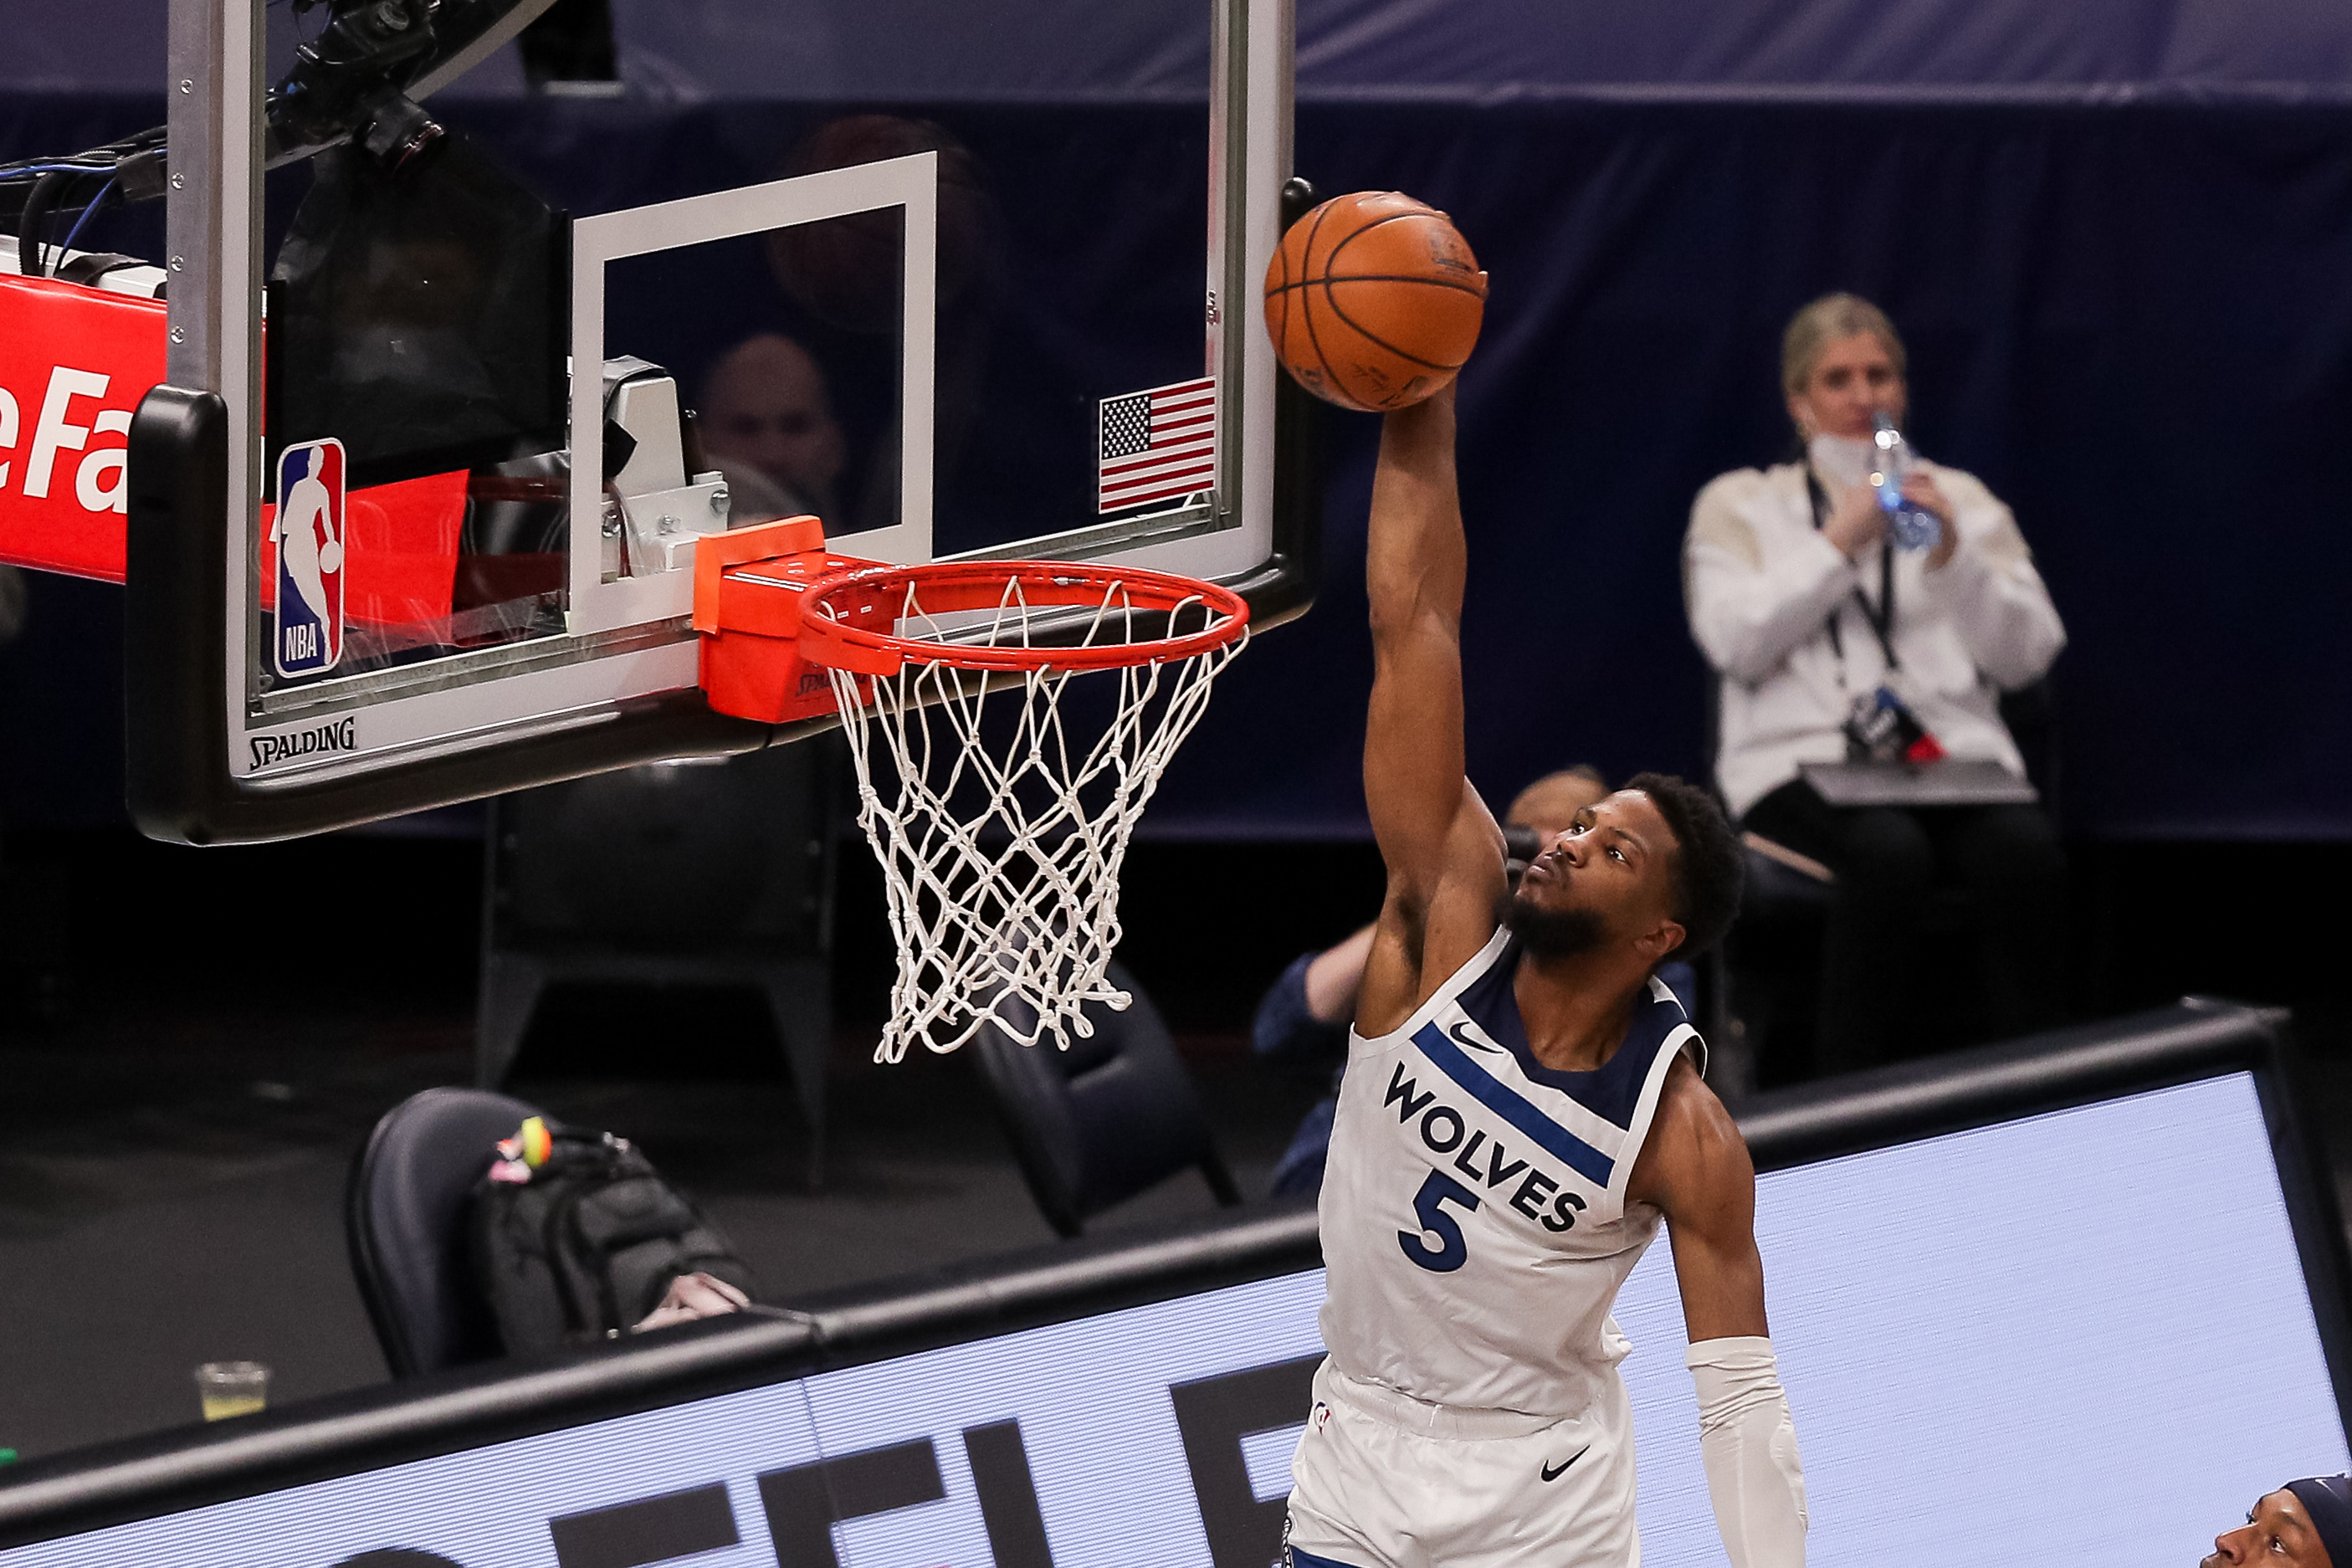 Feb 17, 2021; Minneapolis, Minnesota, USA; Minnesota Timberwolves guard Malik Beasley (5) dunks the ball in the first quarter against the Indiana Pacers at Target Center. Mandatory Credit: Brad Rempel-USA TODAY Sports